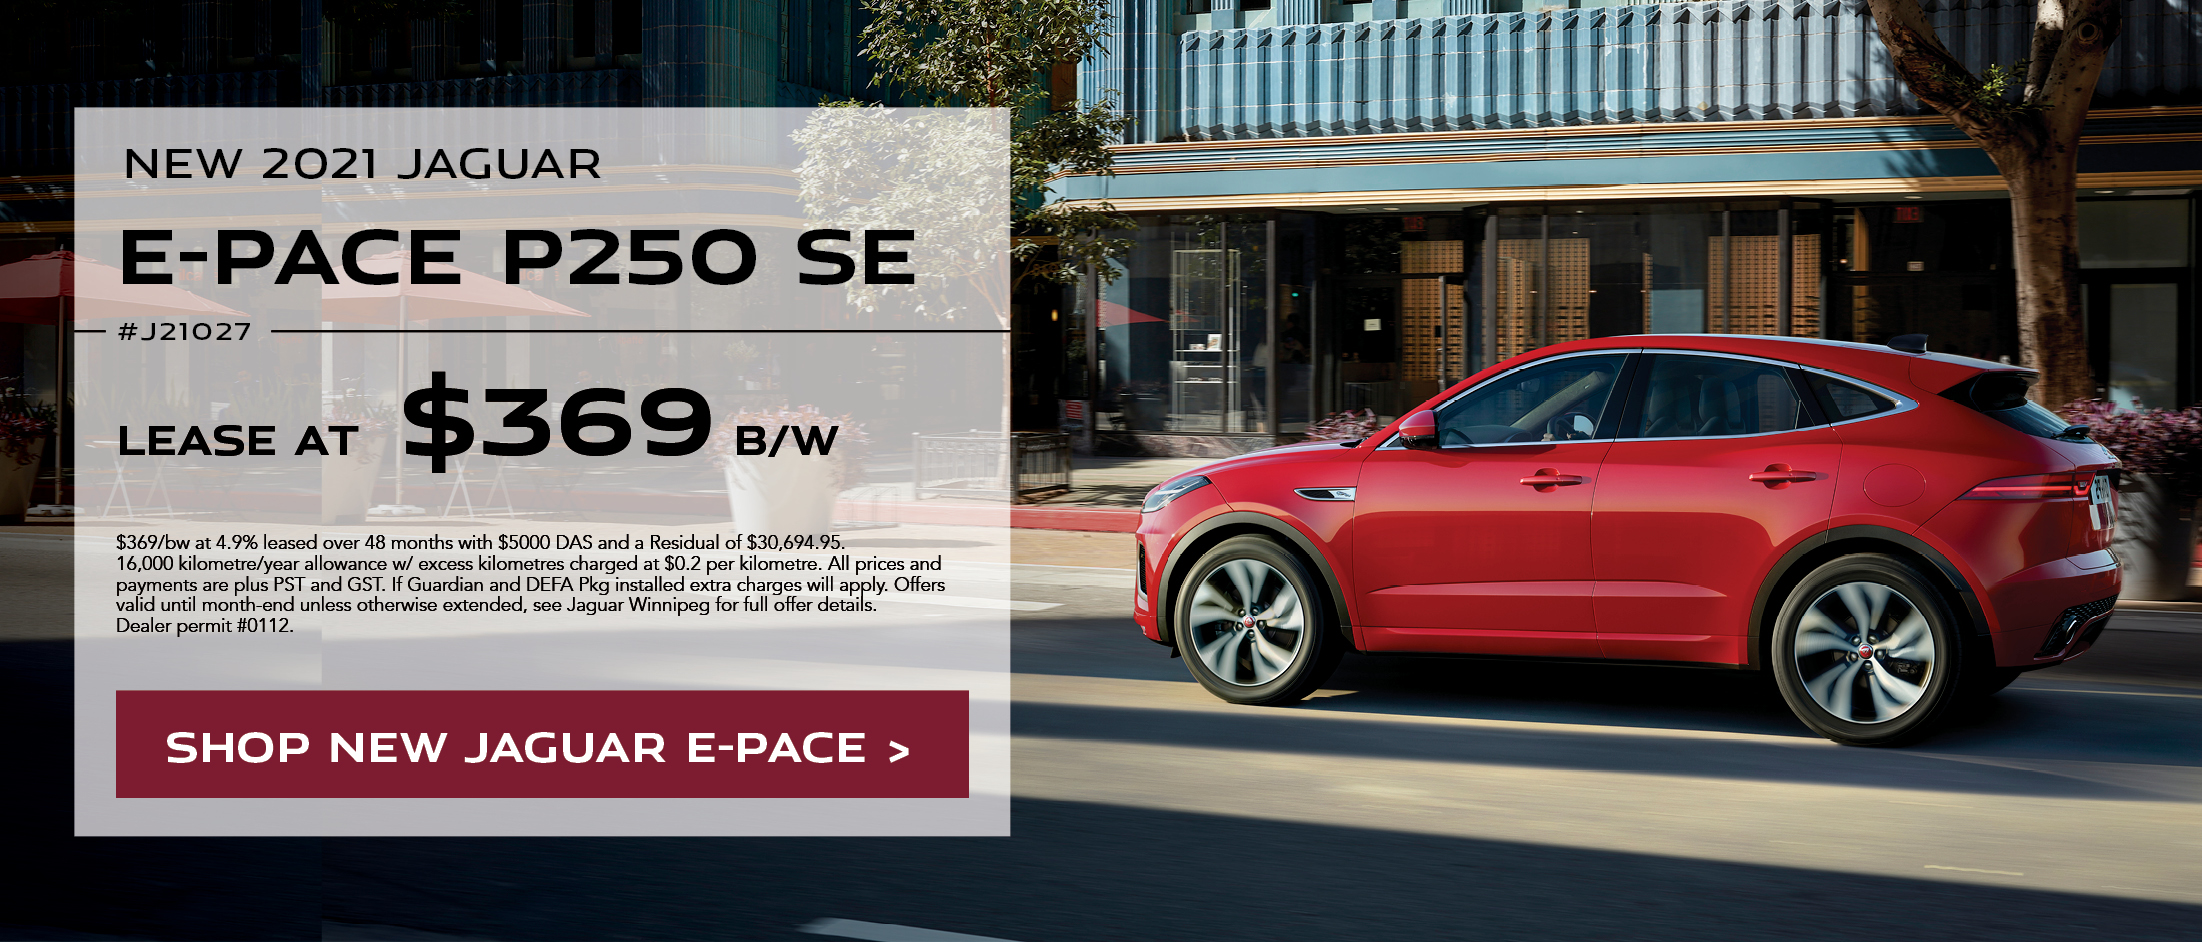 Jlr 06 Banners E Pace